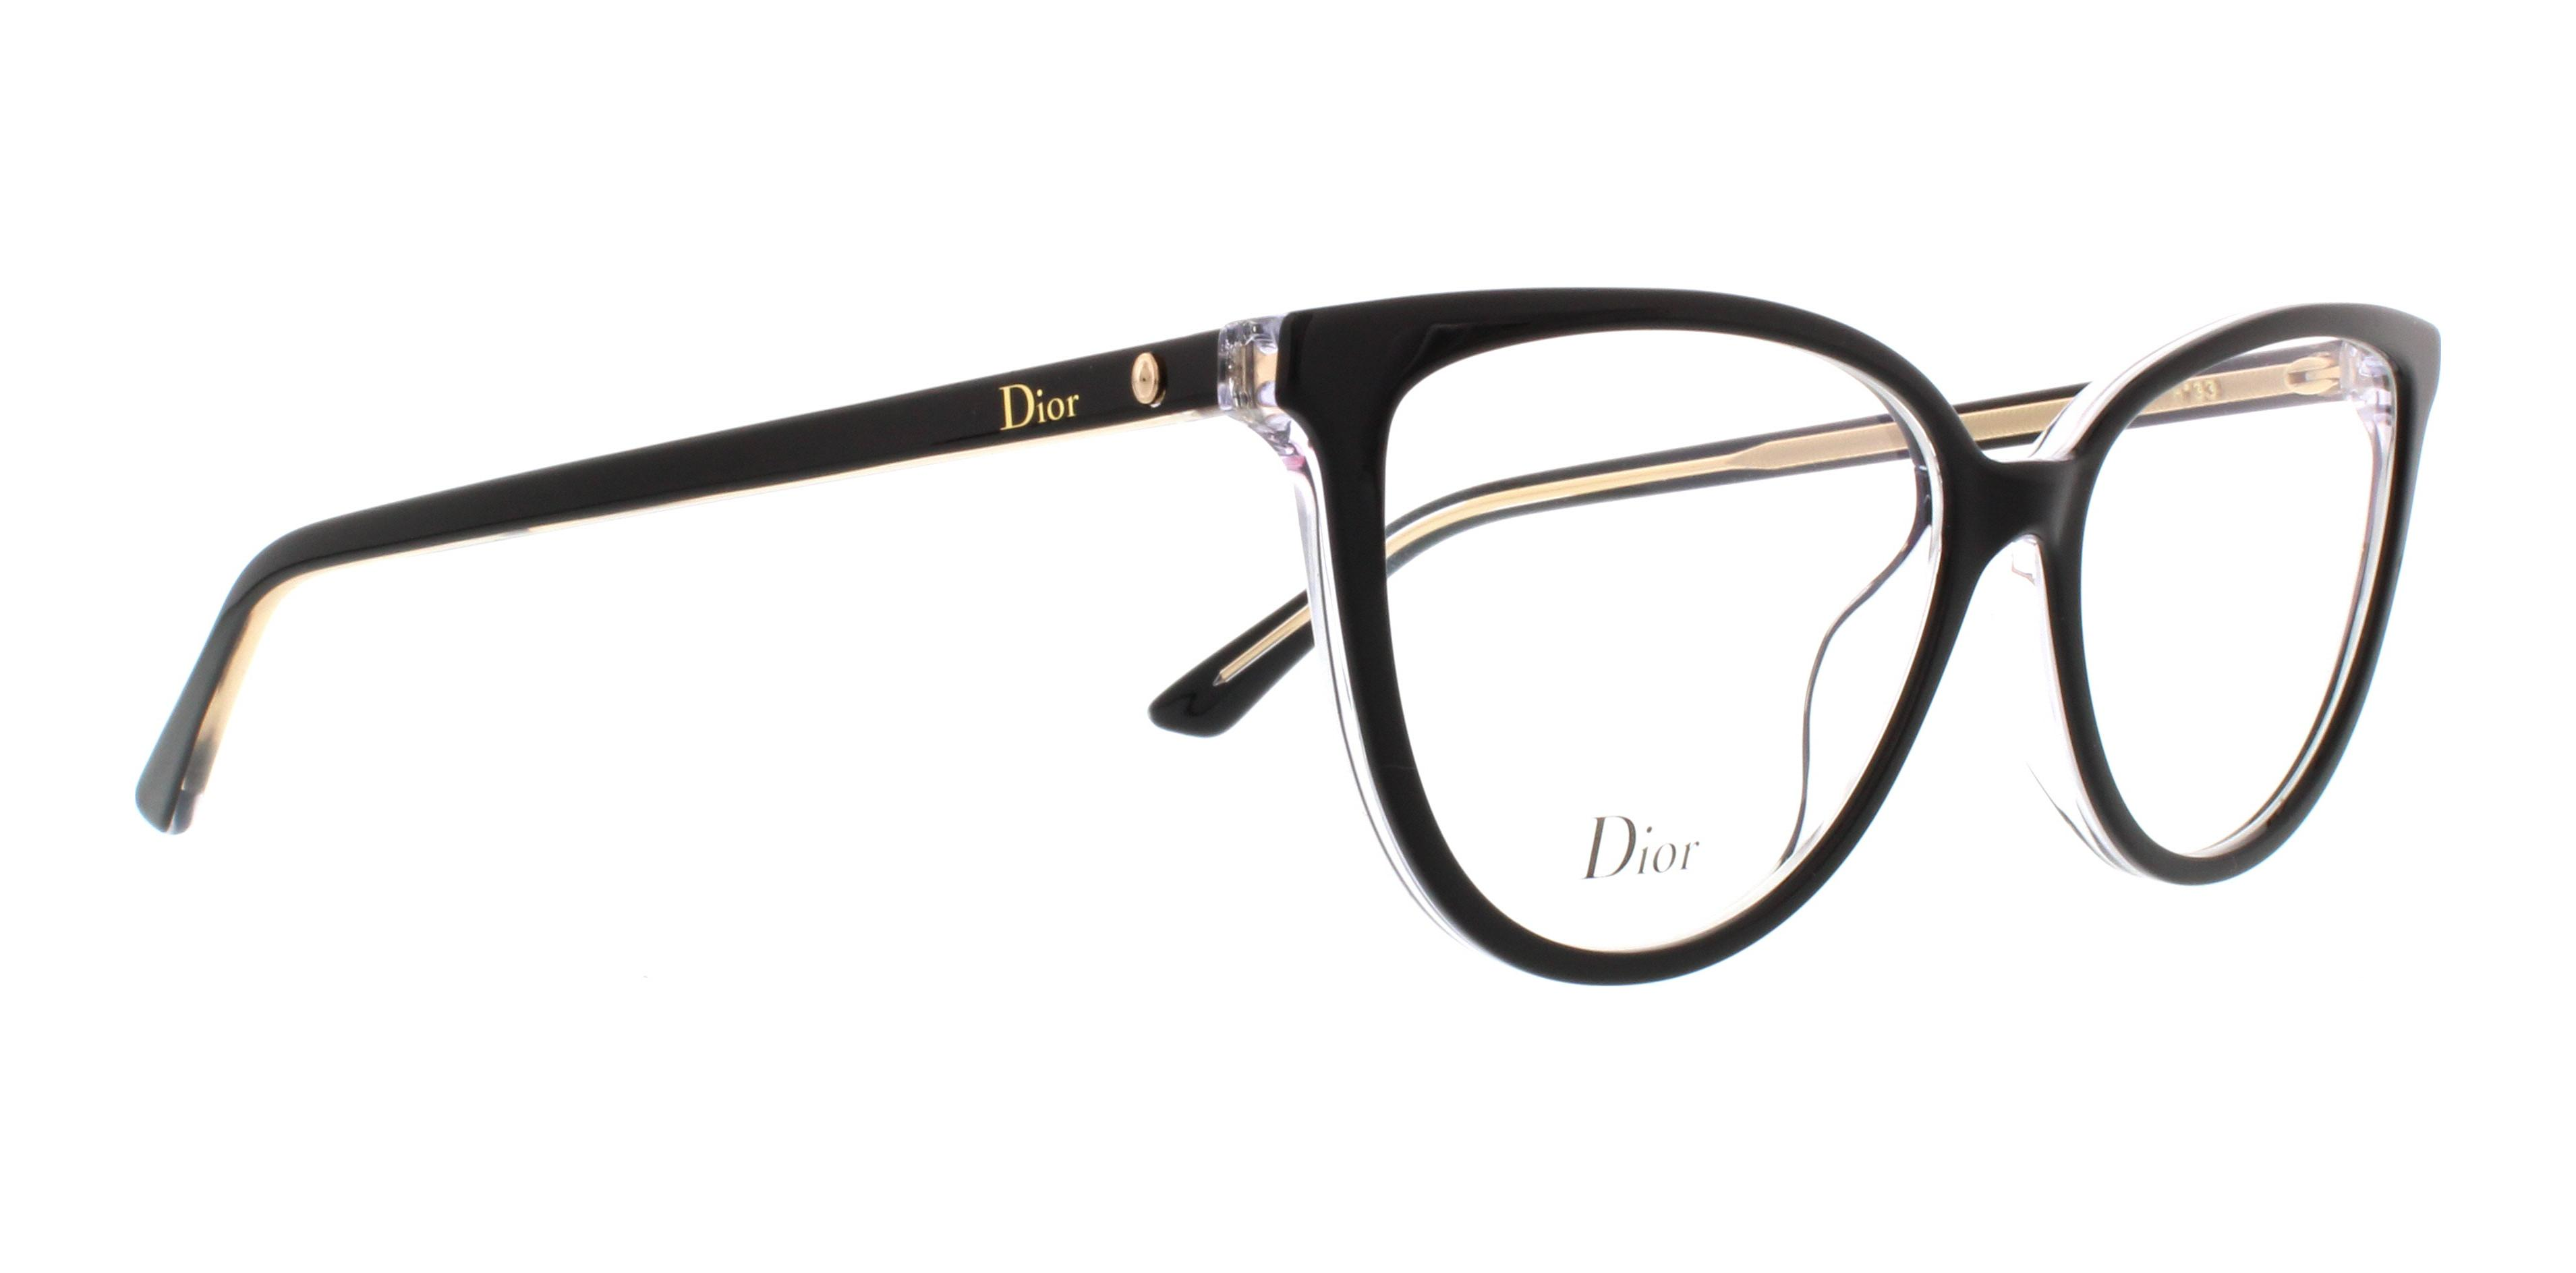 DIOR Eyeglasses MONTAIGNE 33 0TKX Black Crystal 52MM 827886008001 | eBay